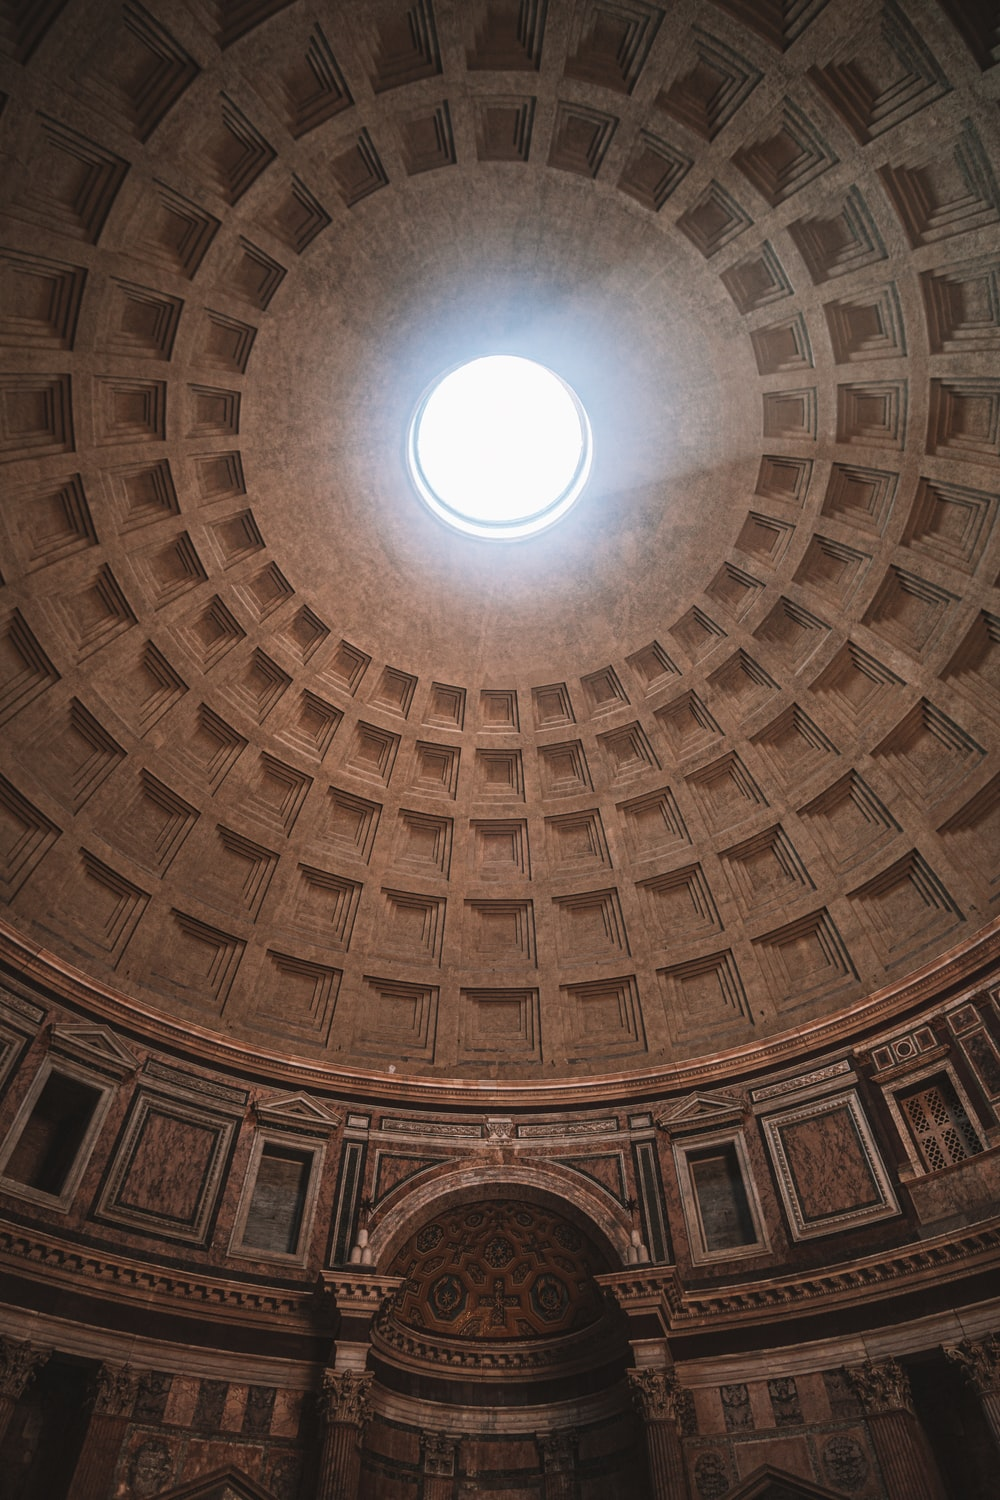 inside Pantheon temple in Rome Italy